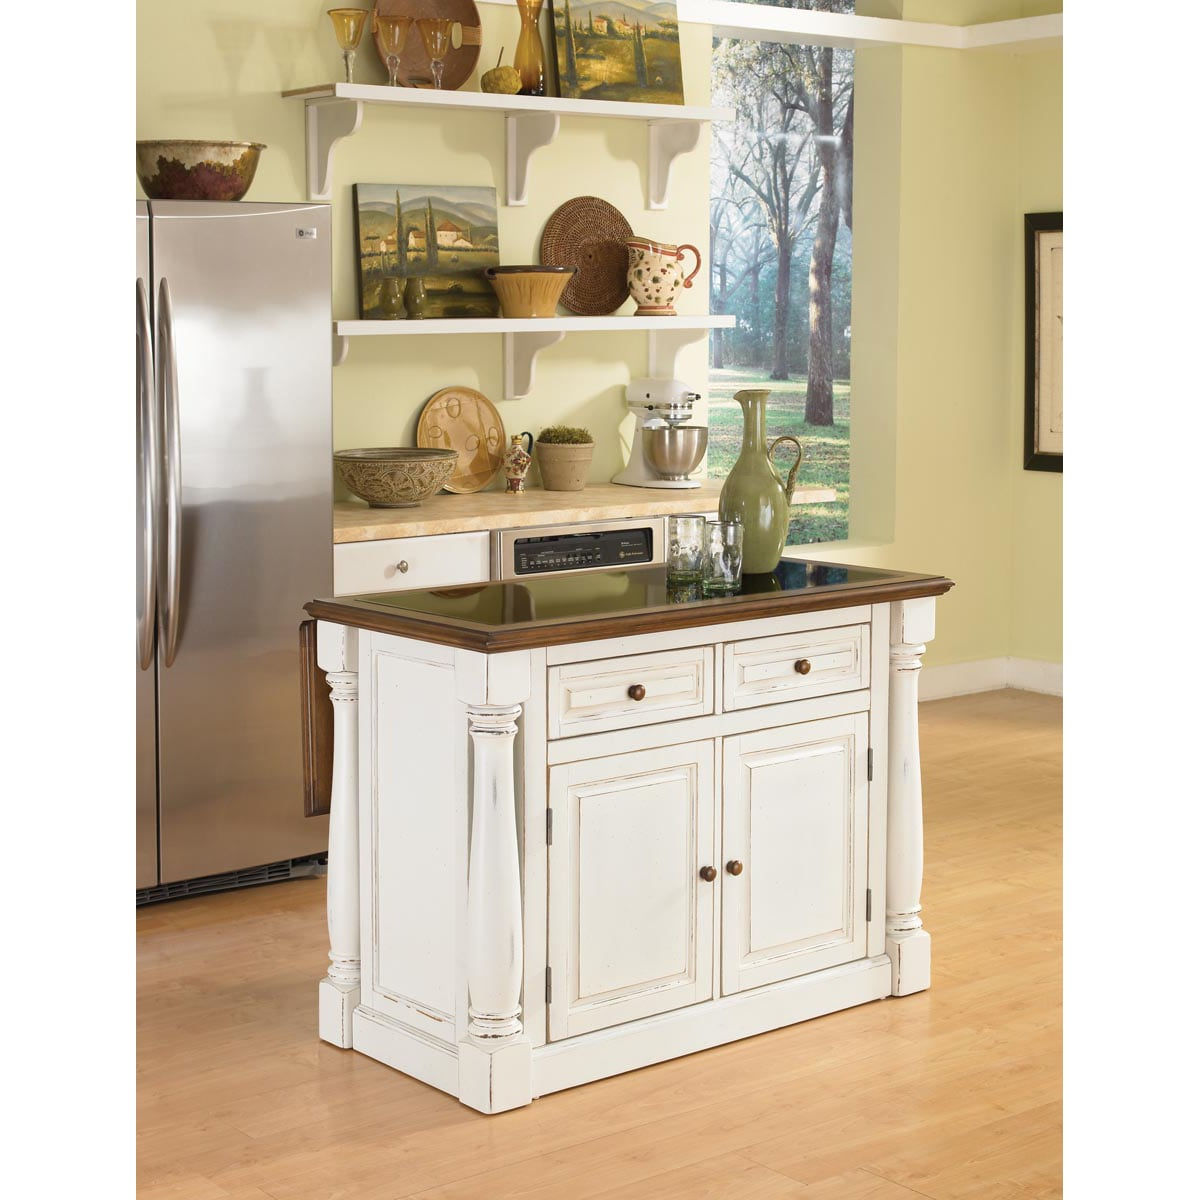 monarch kitchen island tables privacy policy